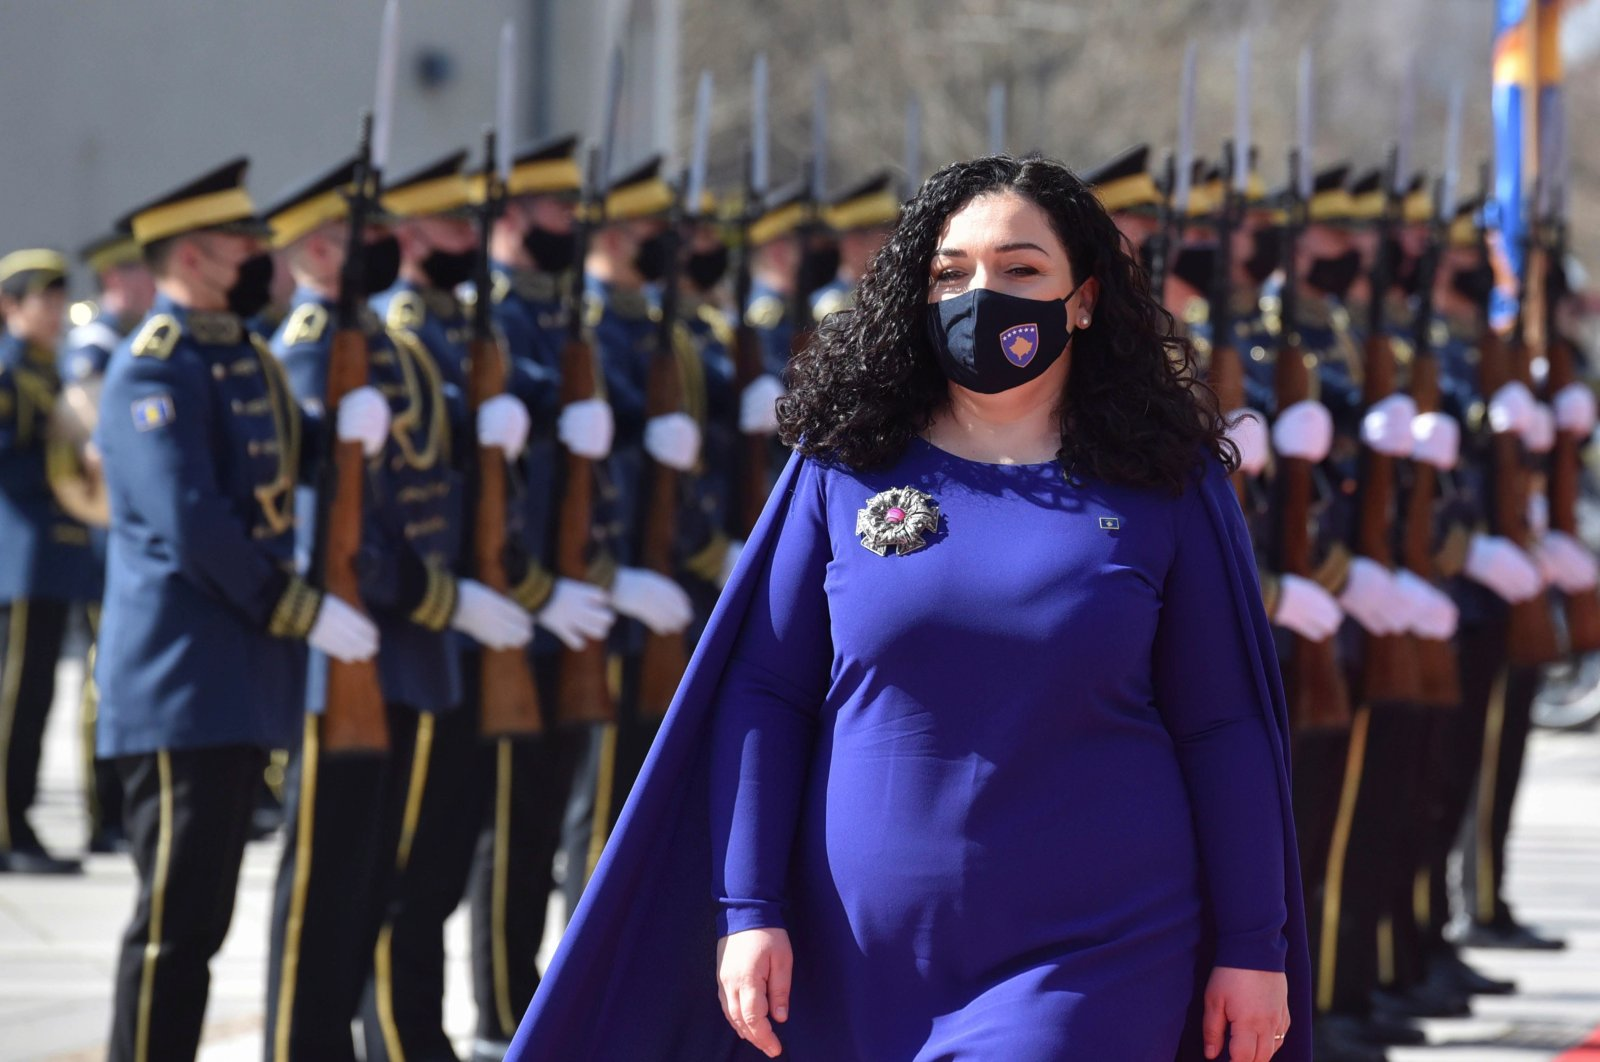 The newly elected Kosovo President Vjosa Osmani is pictured during a swearing in ceremony in Pristina, Kosovo, April 6, 2021. (Reuters Photo)